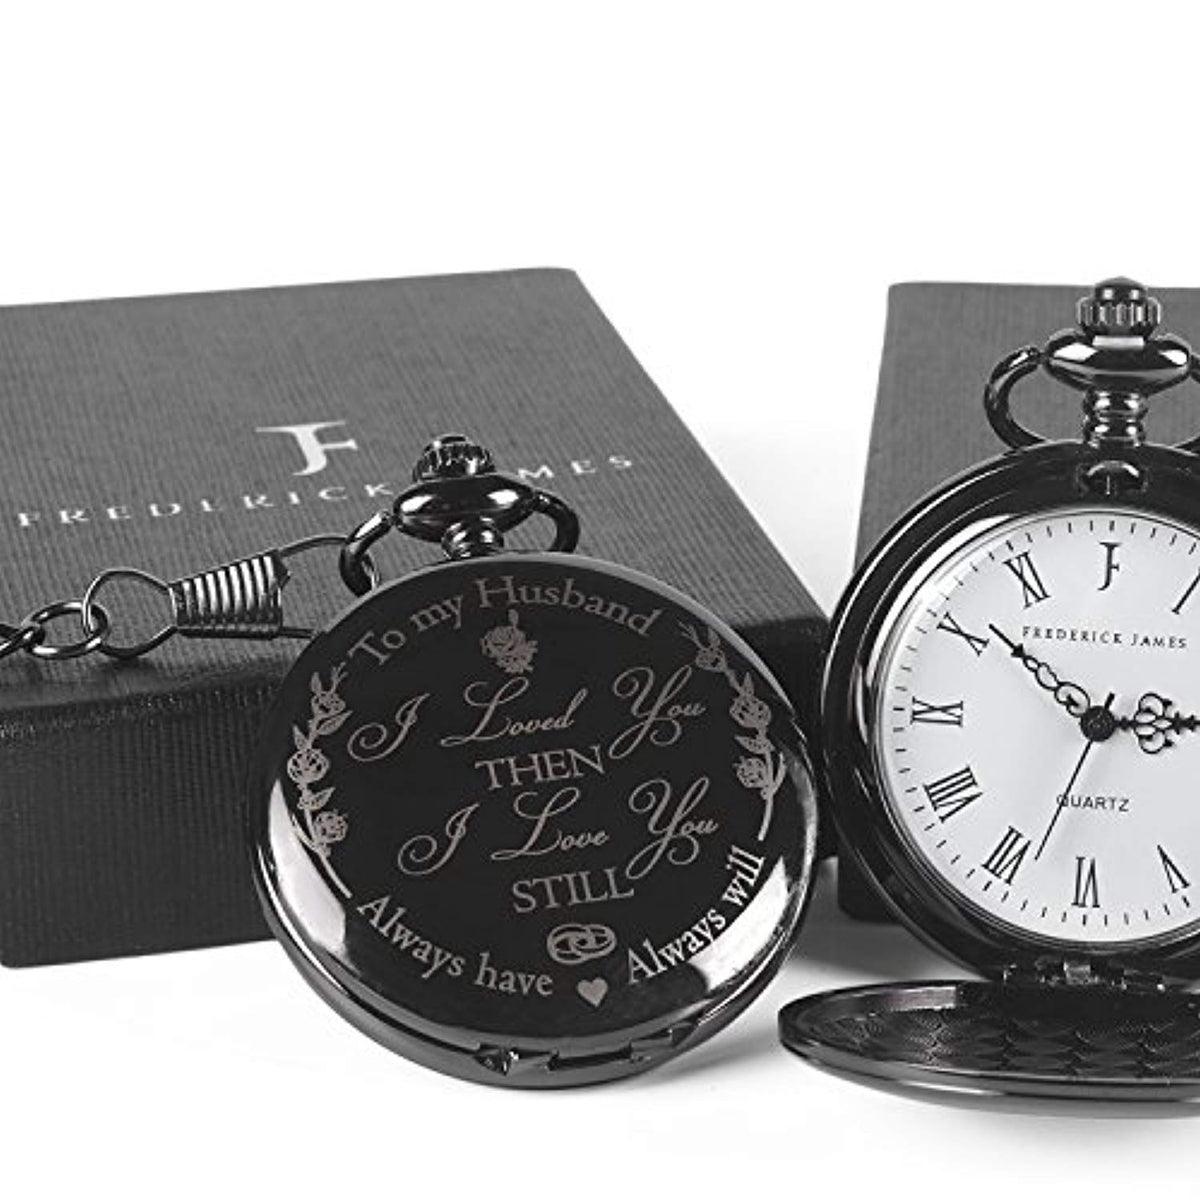 Perfect Wedding Anniversary Gift For Husband: 'To My Husband' Pocket Watch